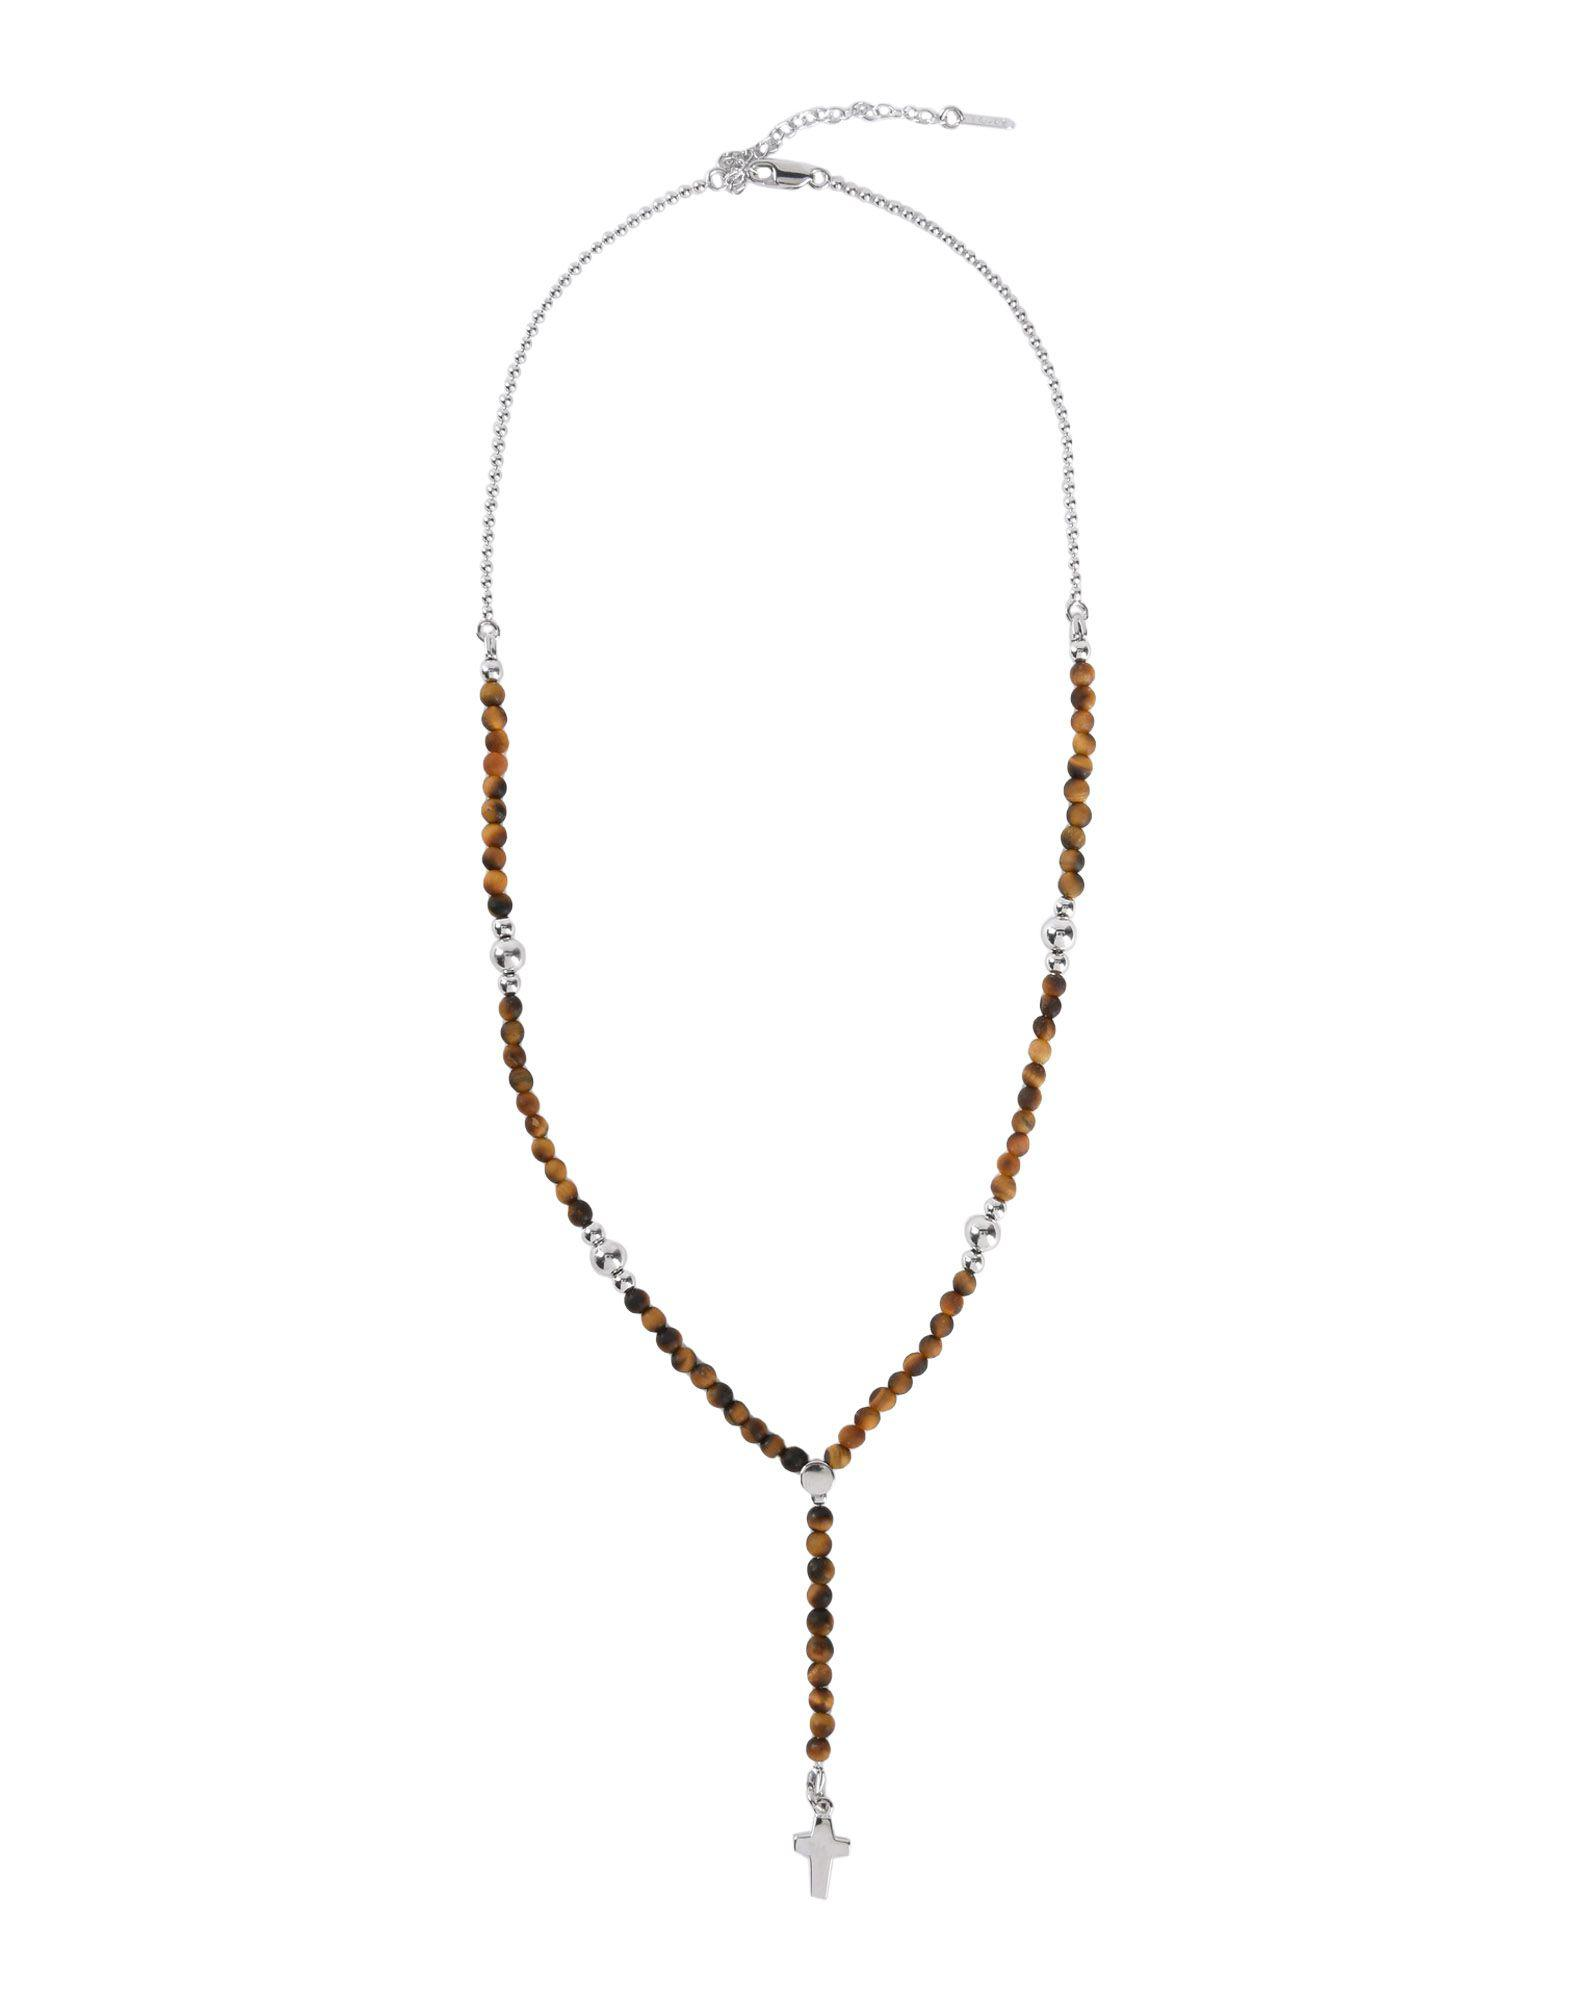 JACK&CO Necklace in Brown